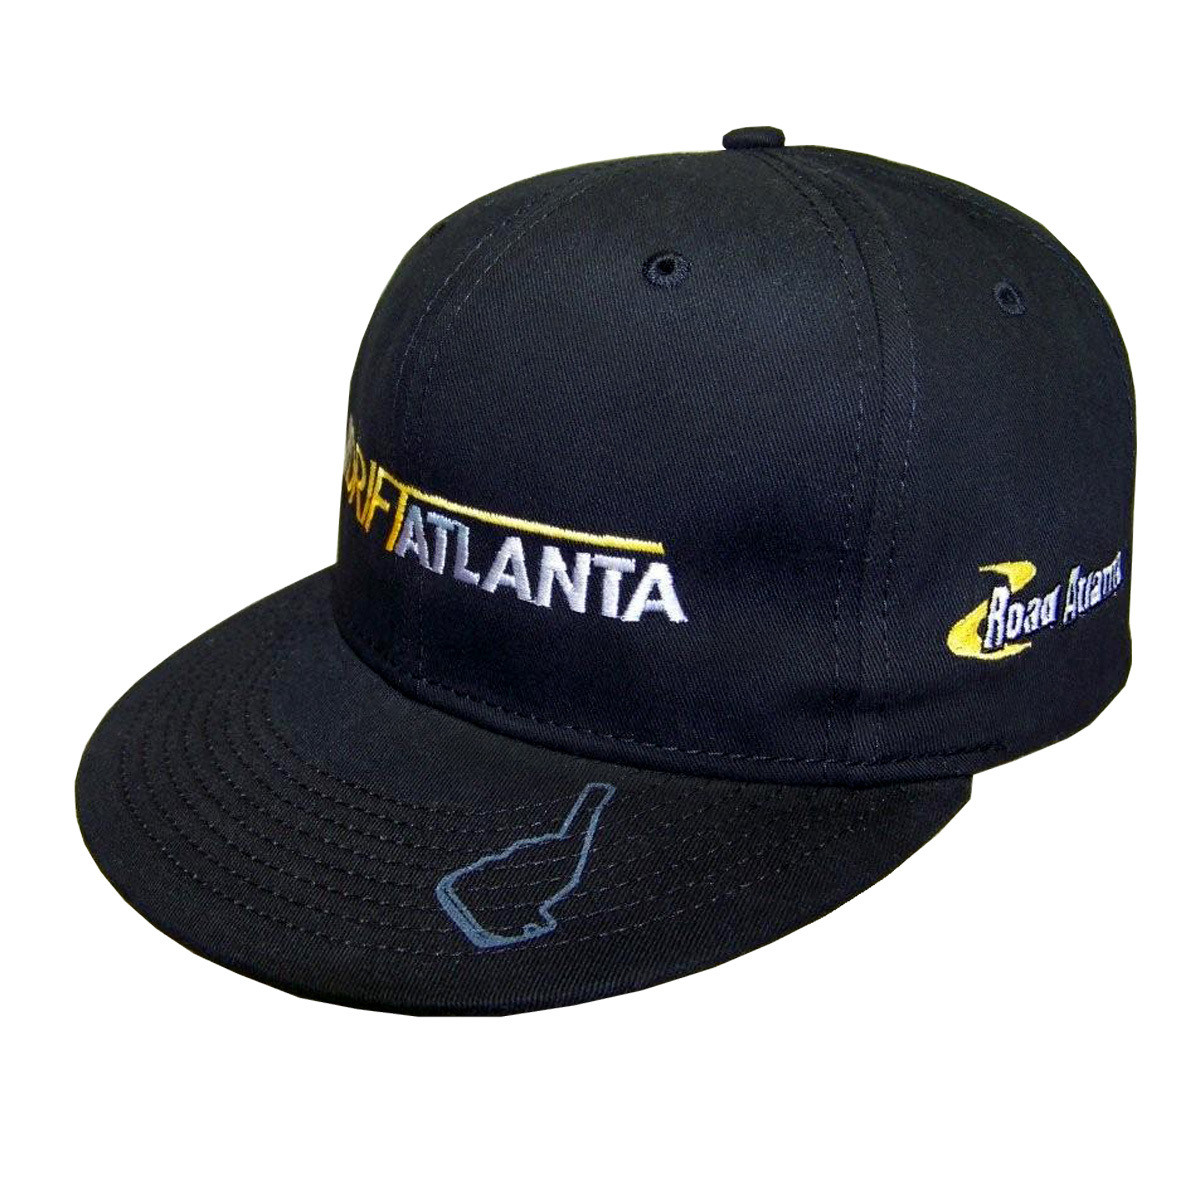 Drift Atlanta Snapback Hat